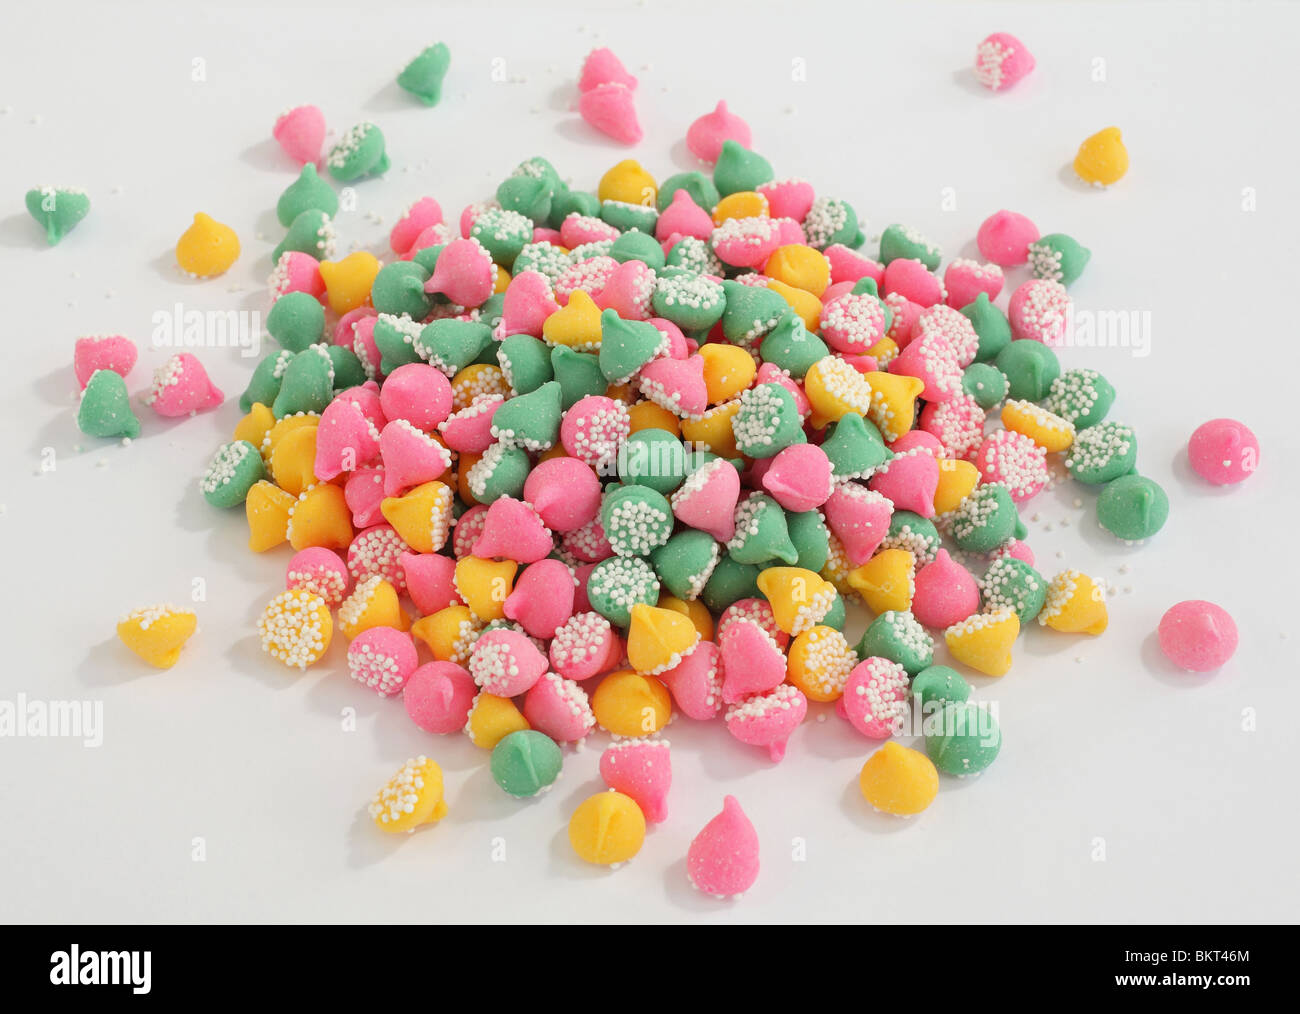 large pile of pastel mint cream drops on white background - Stock Image